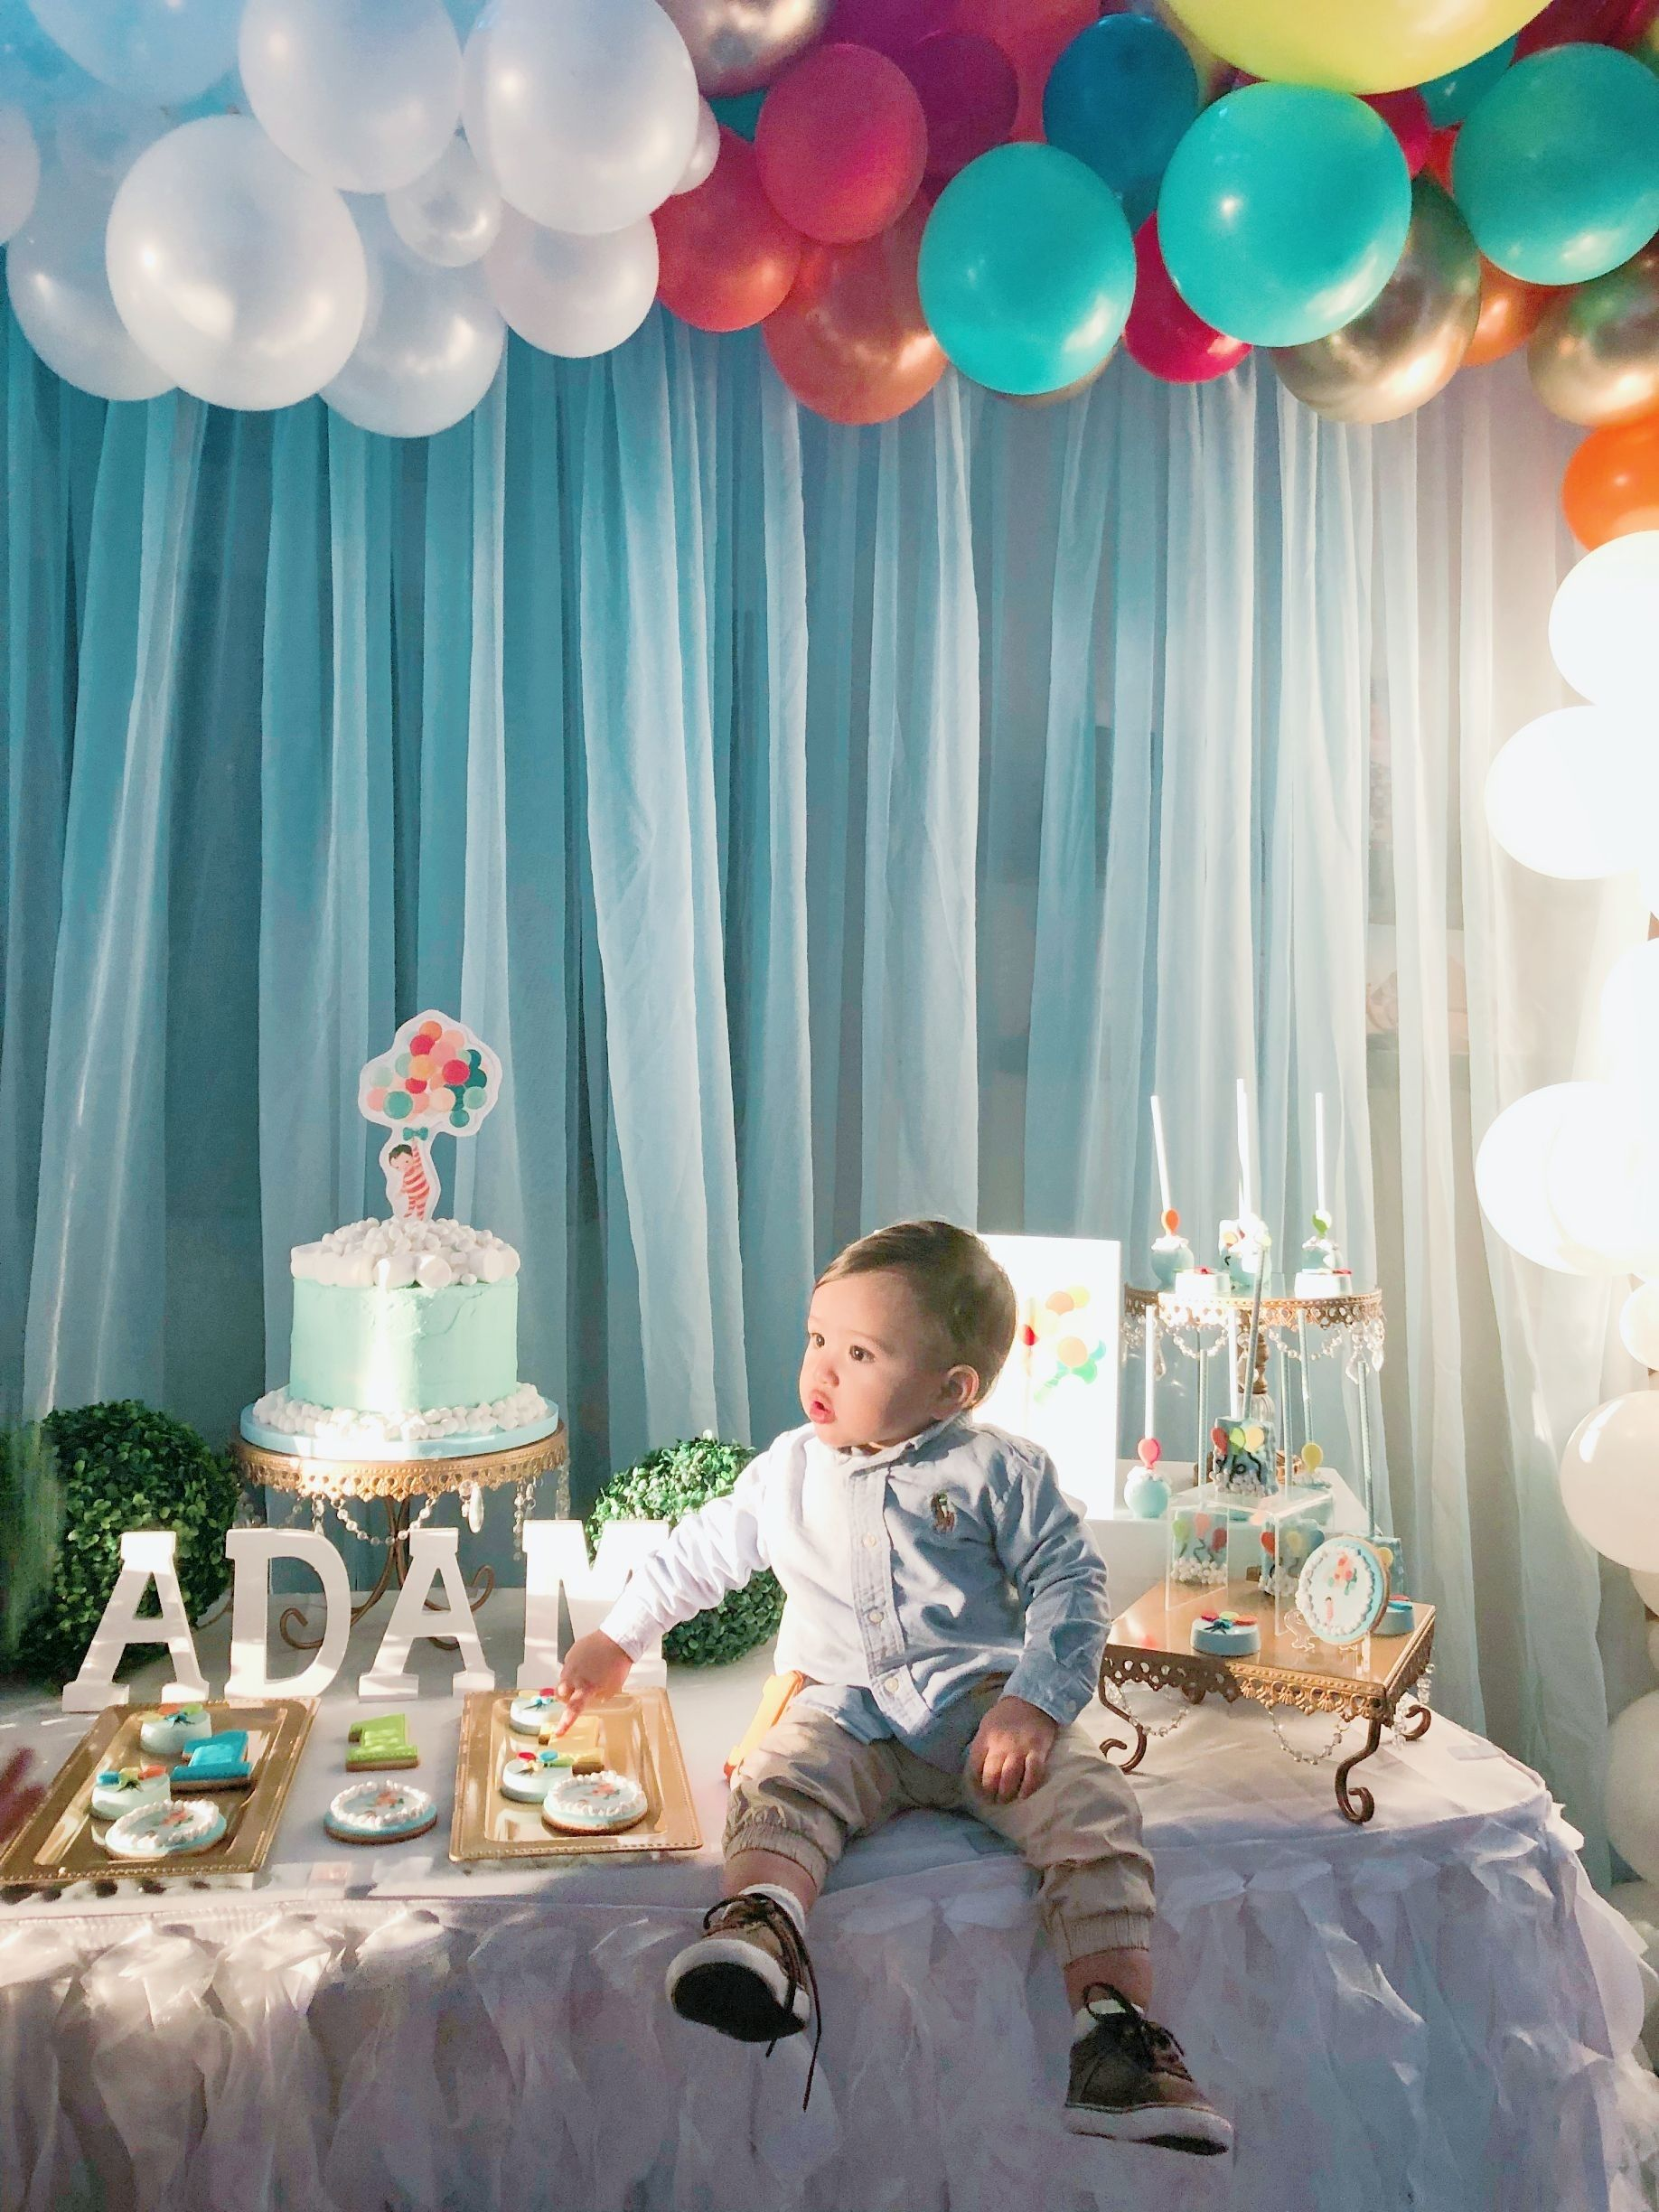 1st birthday party themes for baby boy intended for ideas